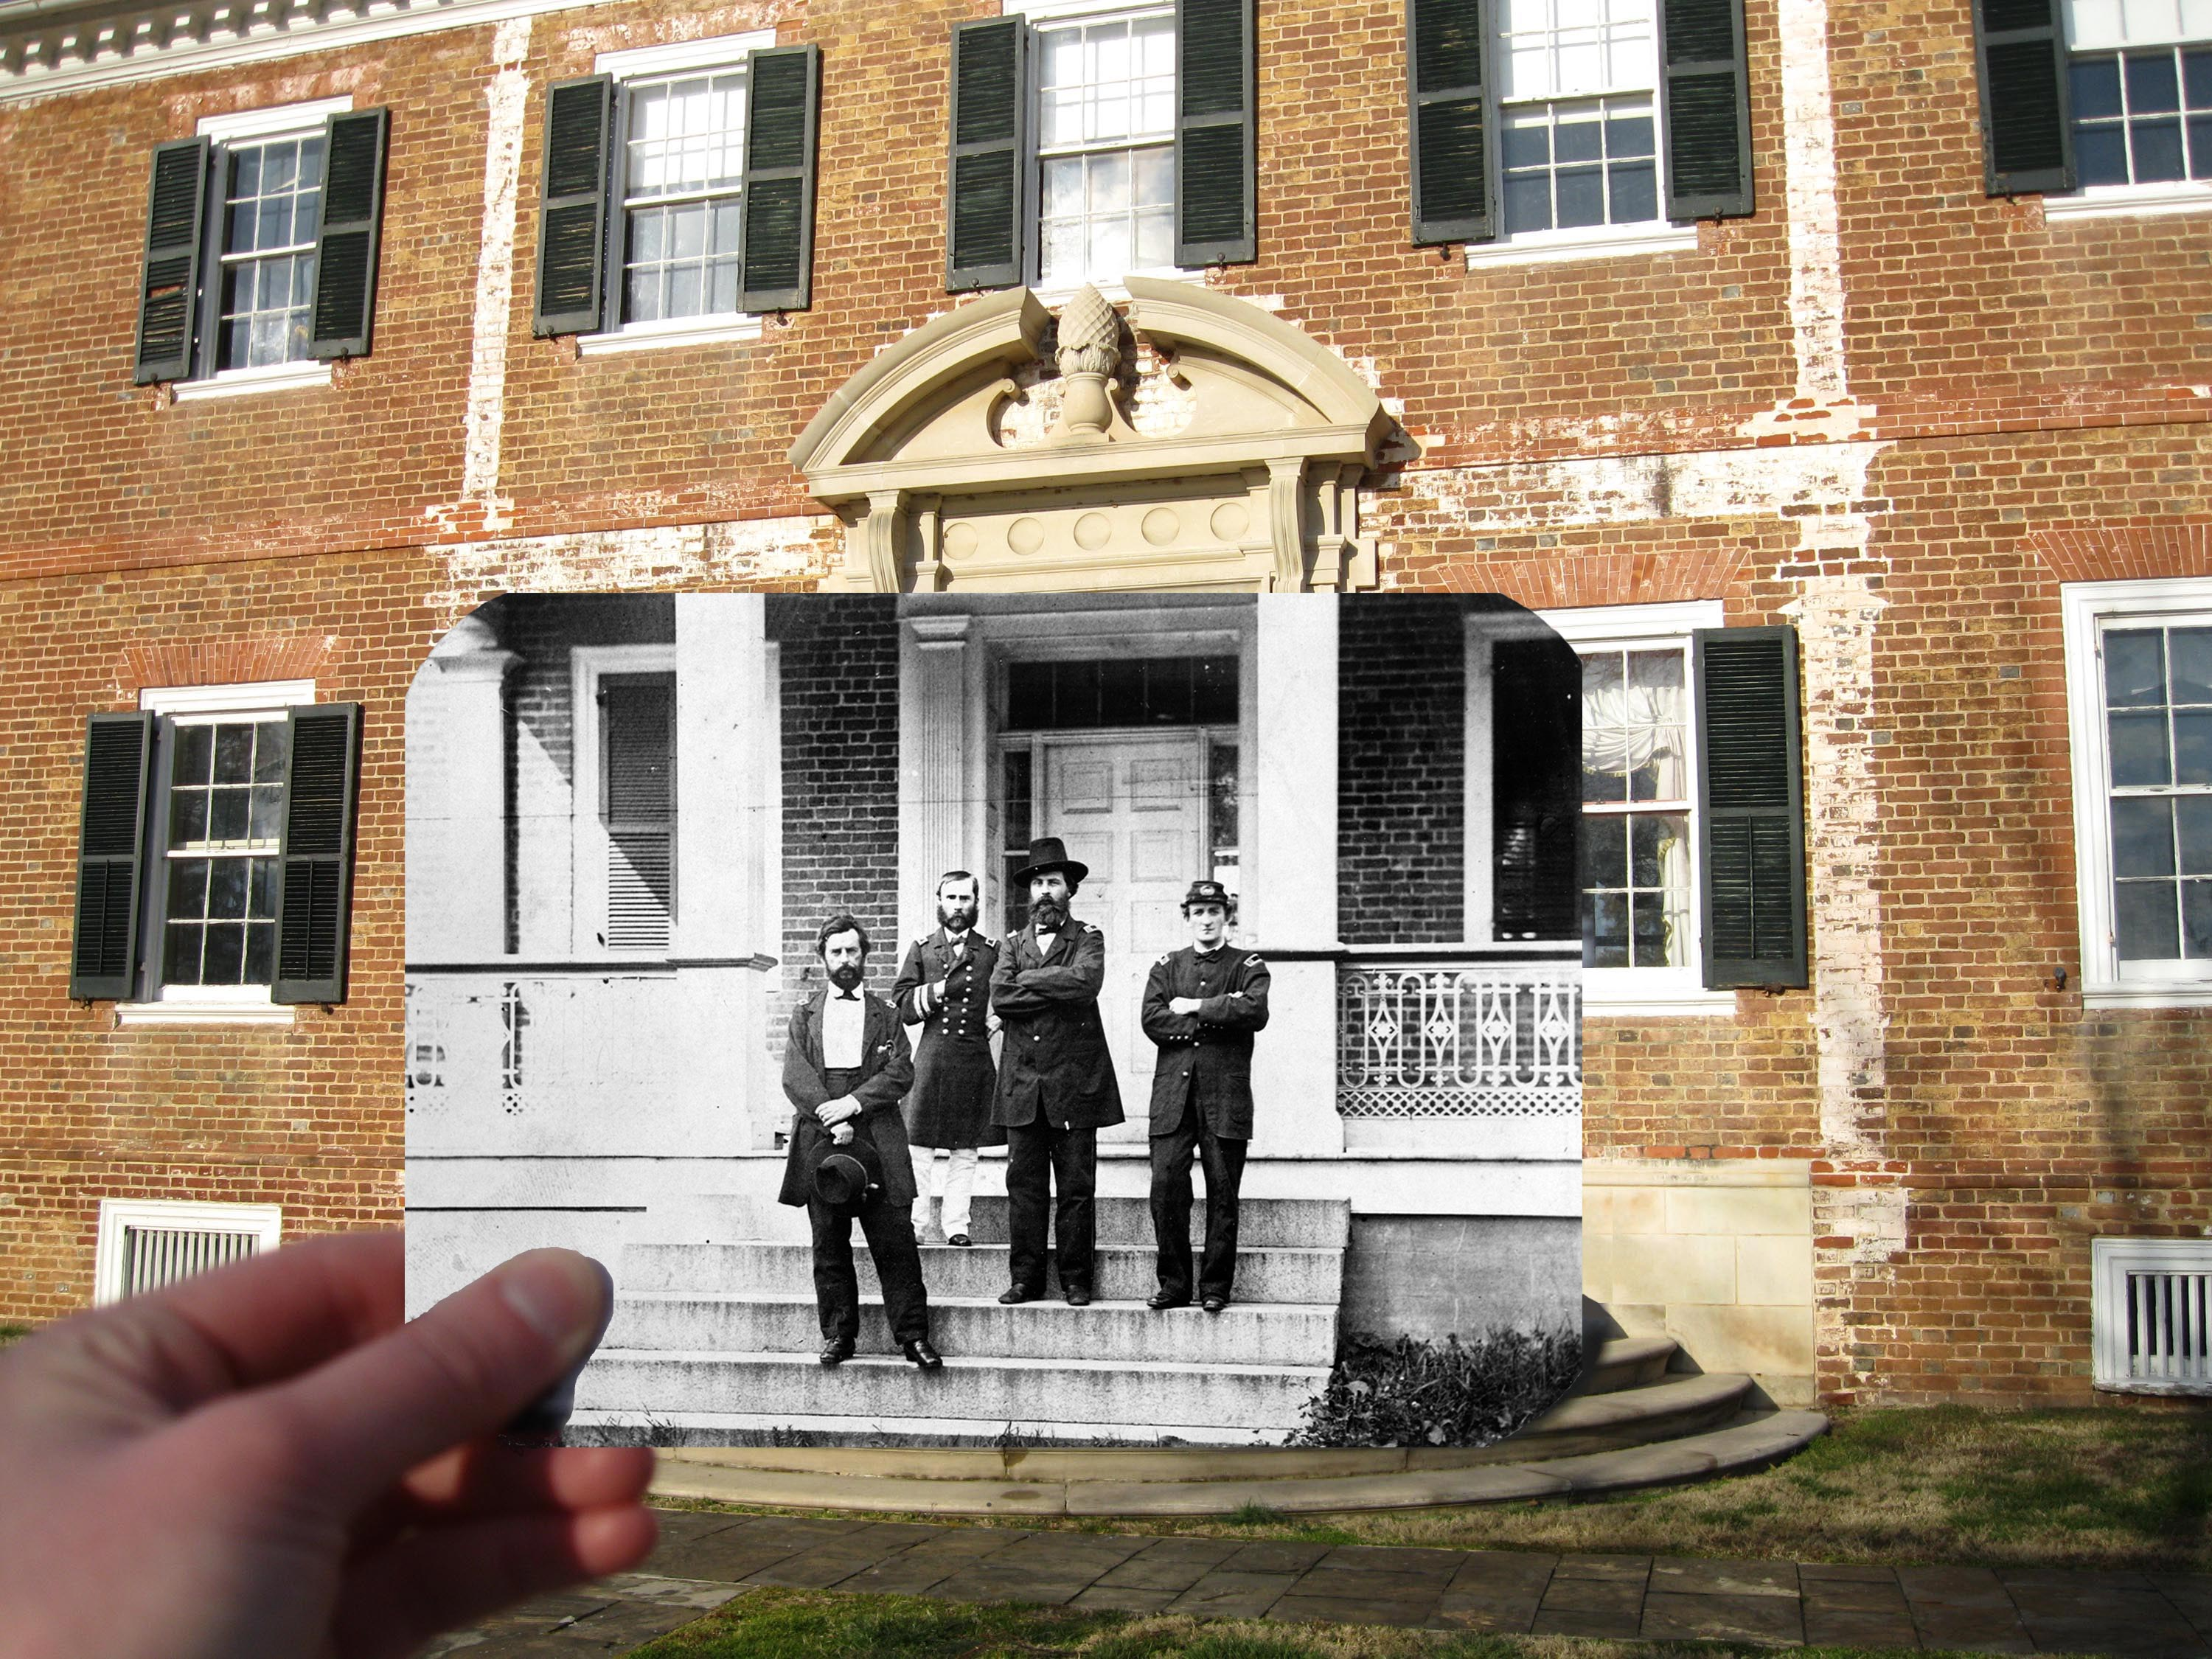 Historic image of Union officers overlaid on modern image of Chatham Manor's brick front.